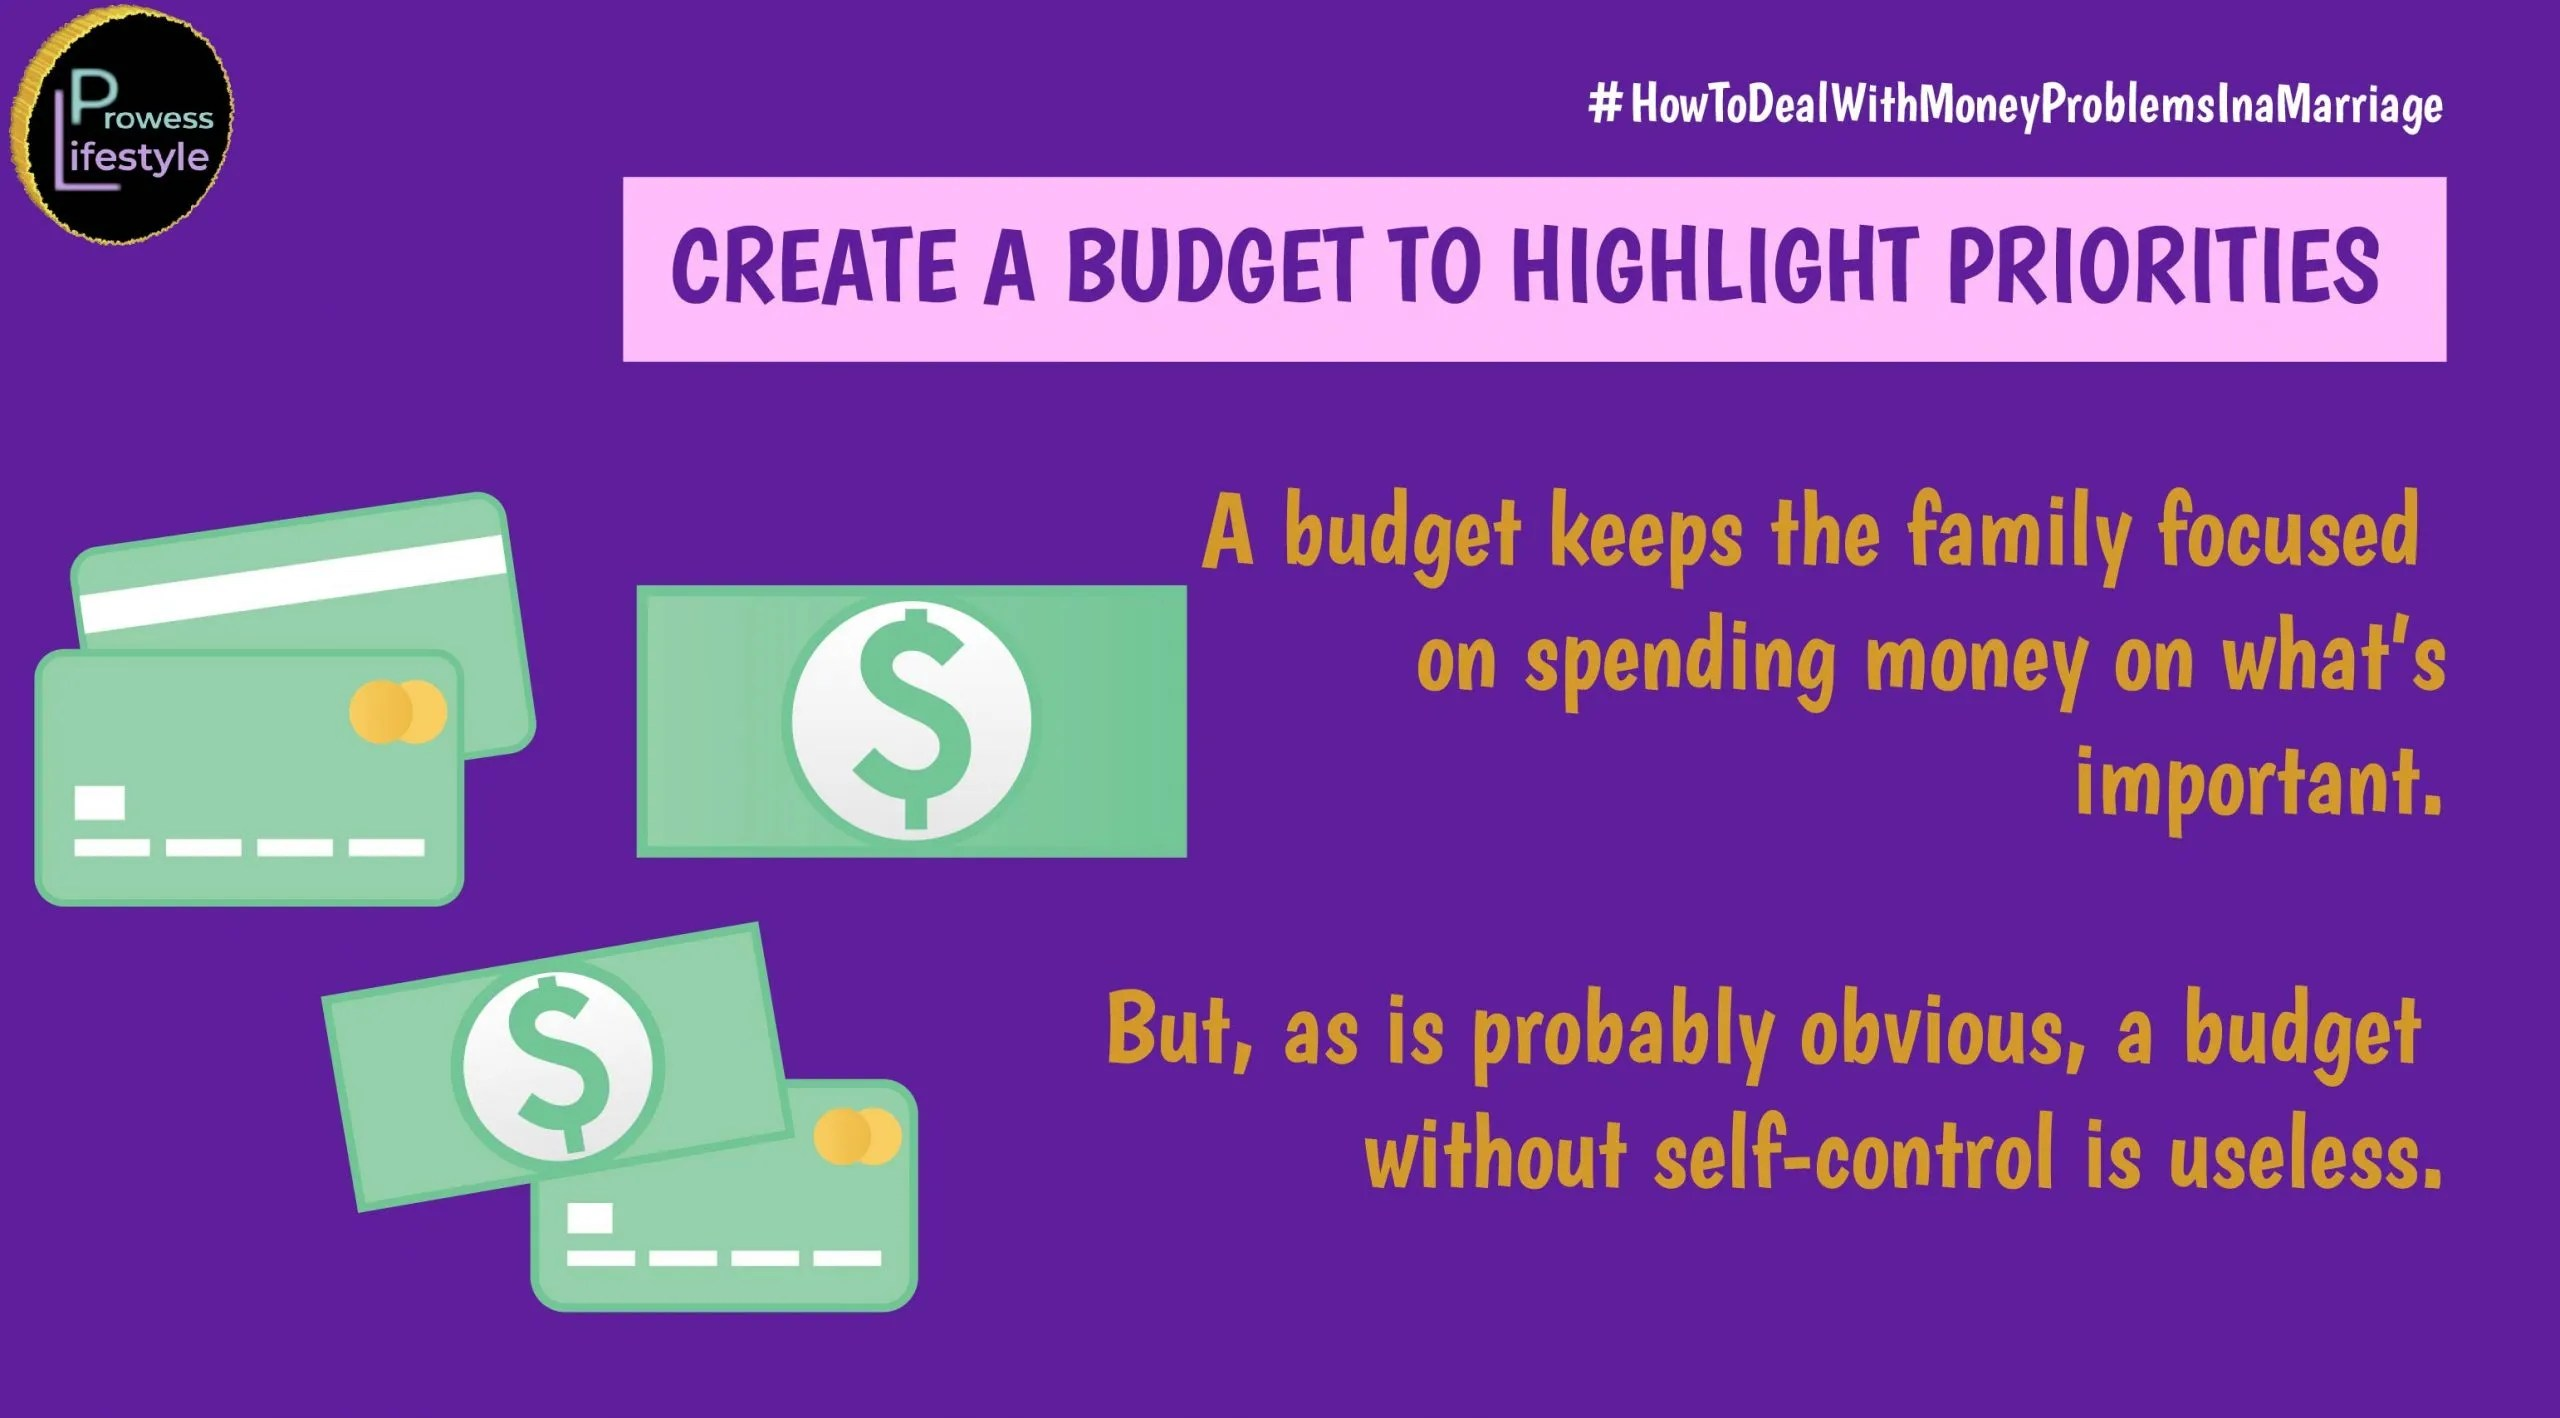 CREATE A BUDGET TO HIGHLIGHT PRIORITIES - Money problems in a marriage